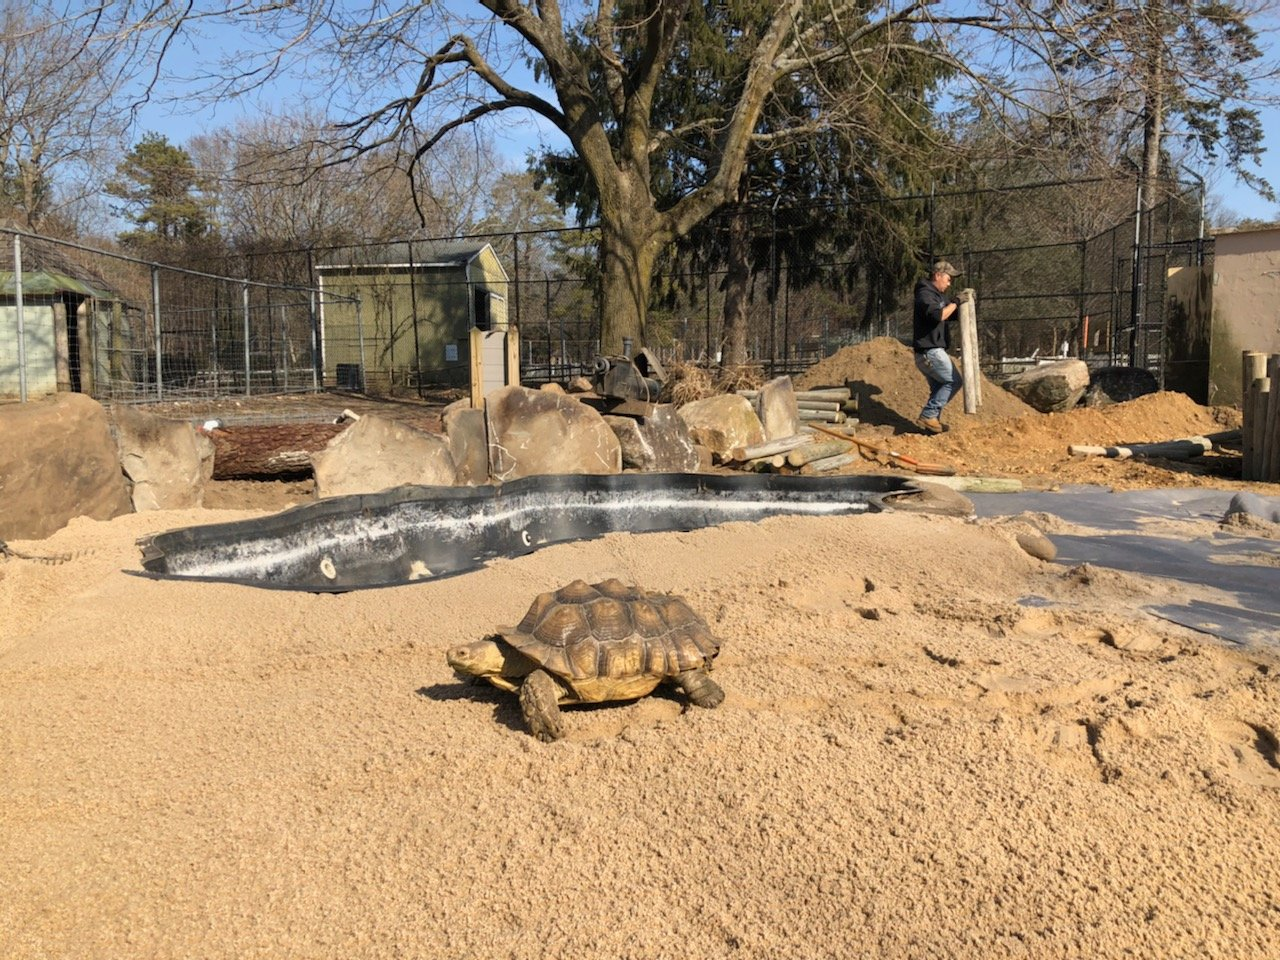 A tortoise on the move at the new exhibit at the Long Island Game Farm.